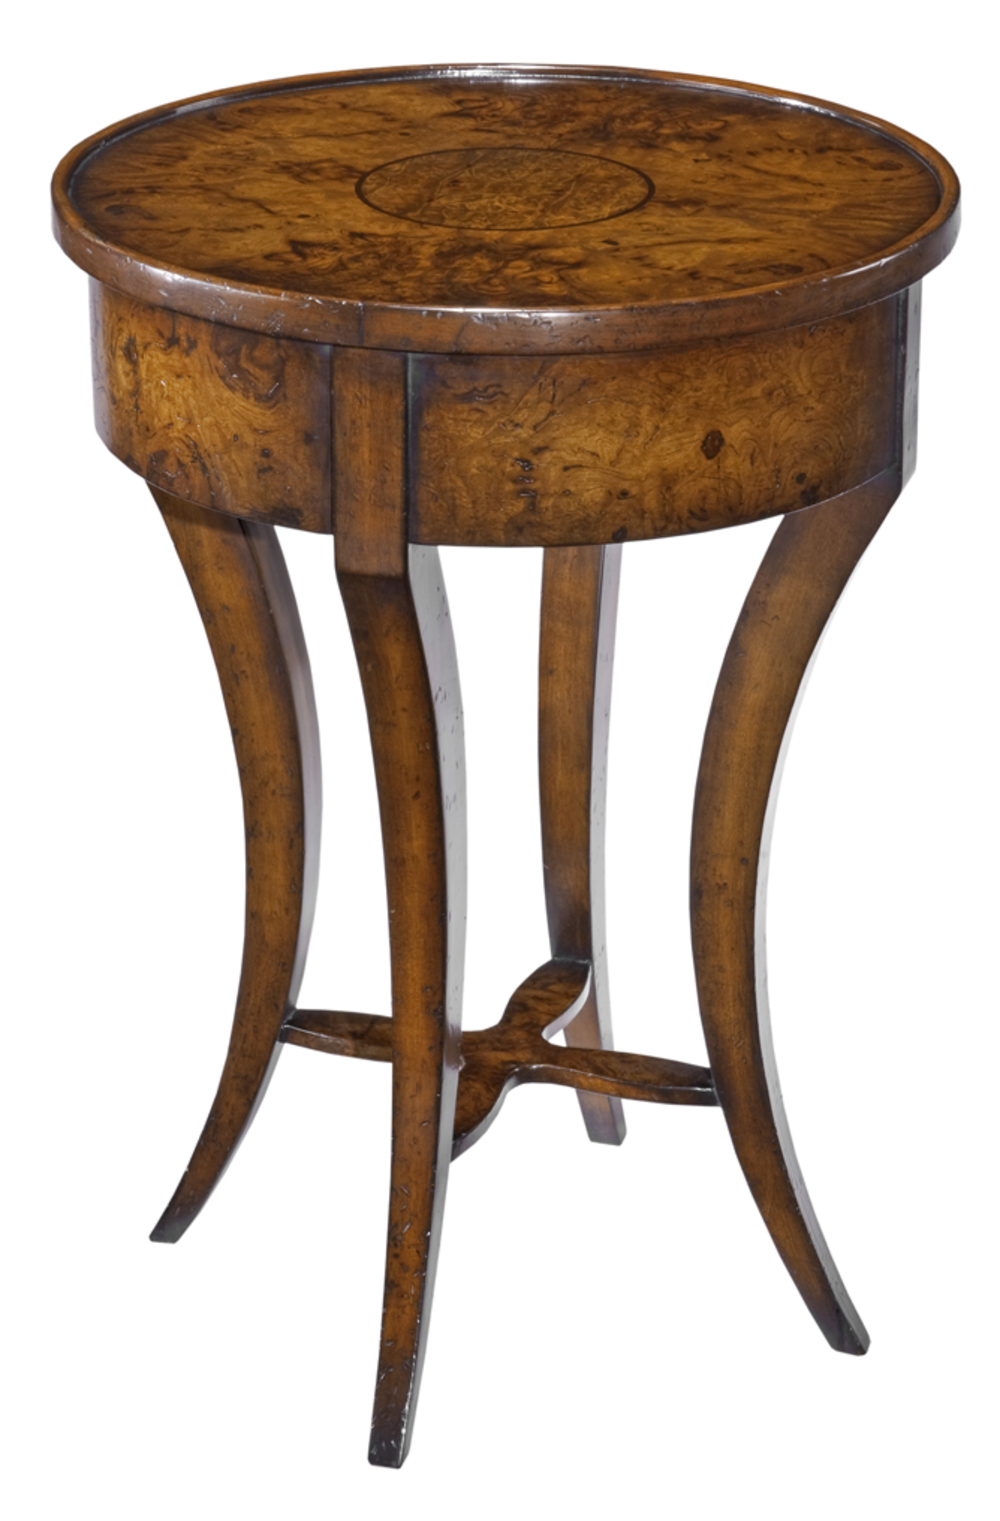 Woodbridge Furniture Company - Empire Drink Table